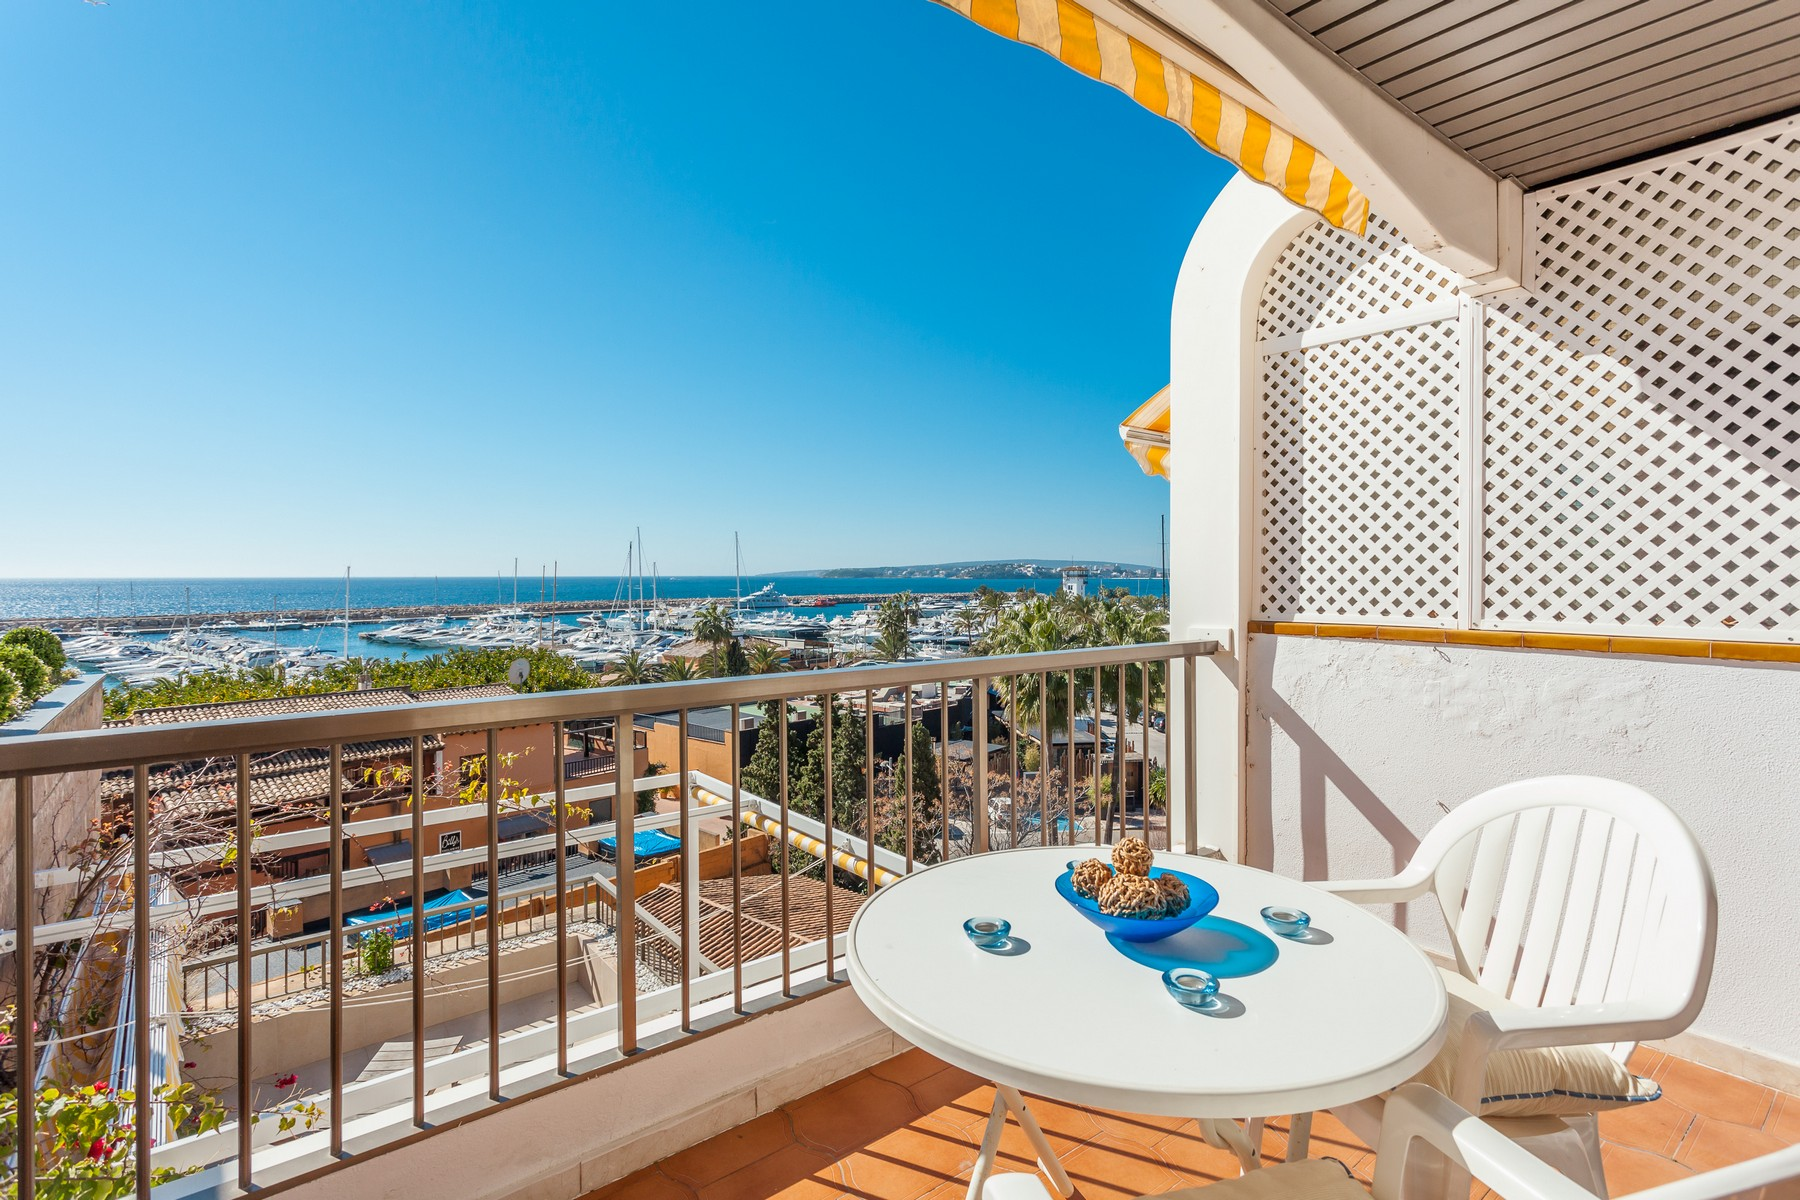 Apartamento por un Venta en Apartment overlooking Puerto Portals and the sea Portals Nous, Mallorca, 07181 España